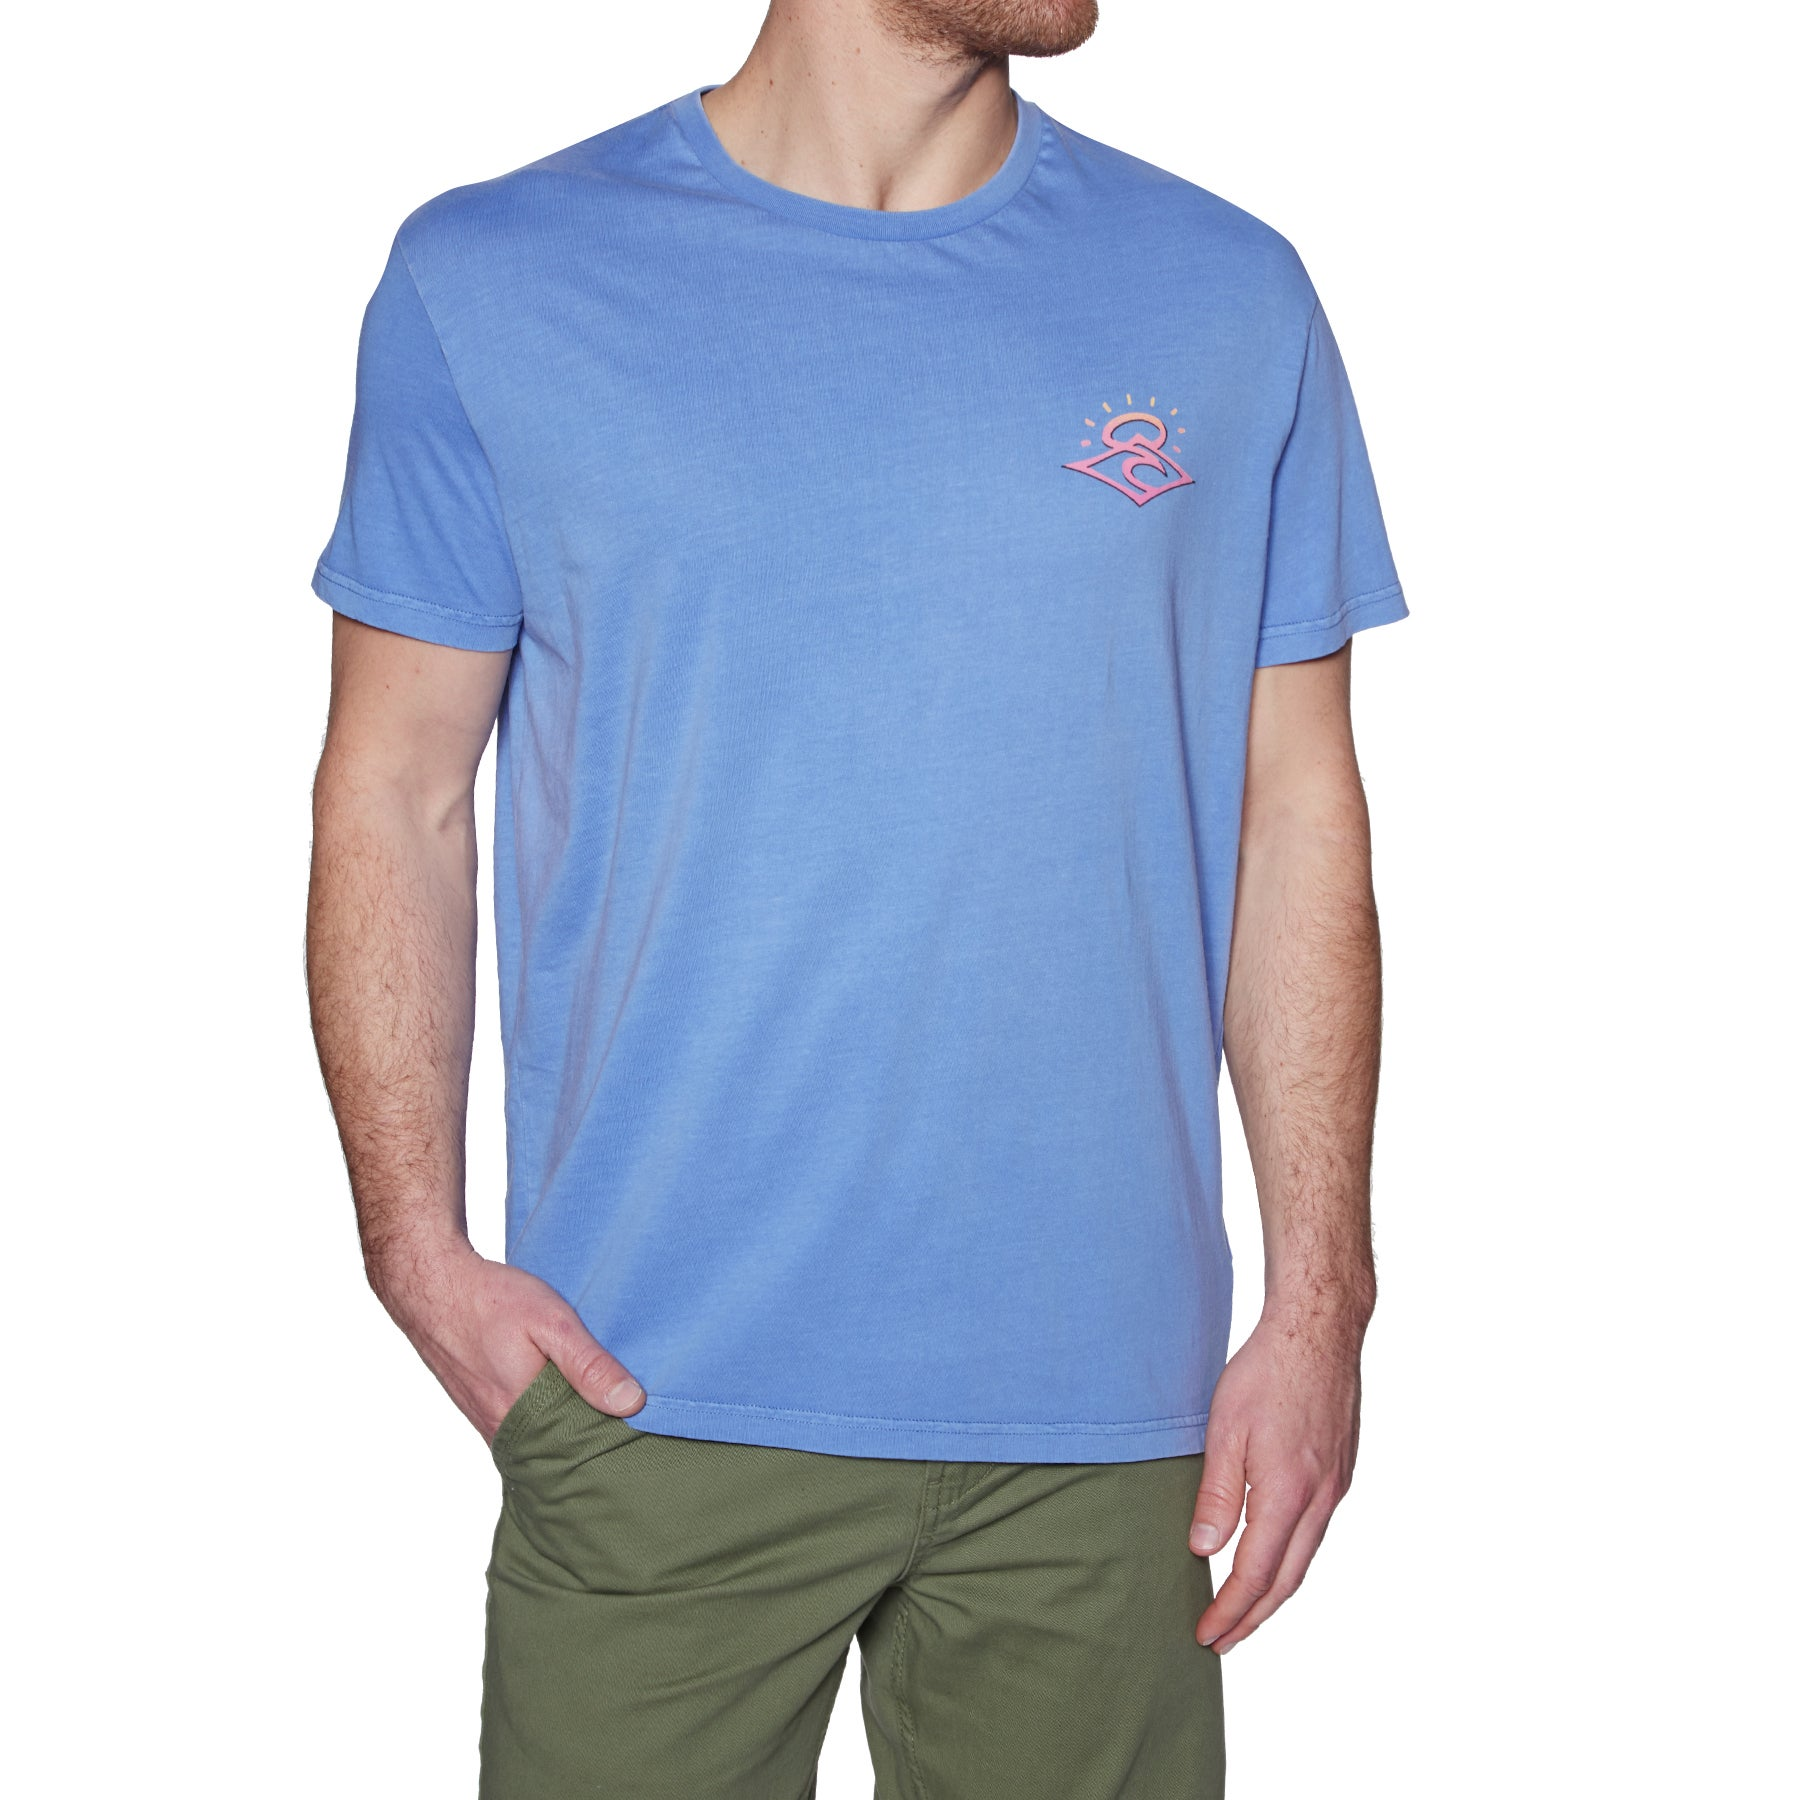 Rip Curl The Origins Short Sleeve T-Shirt - Lavender